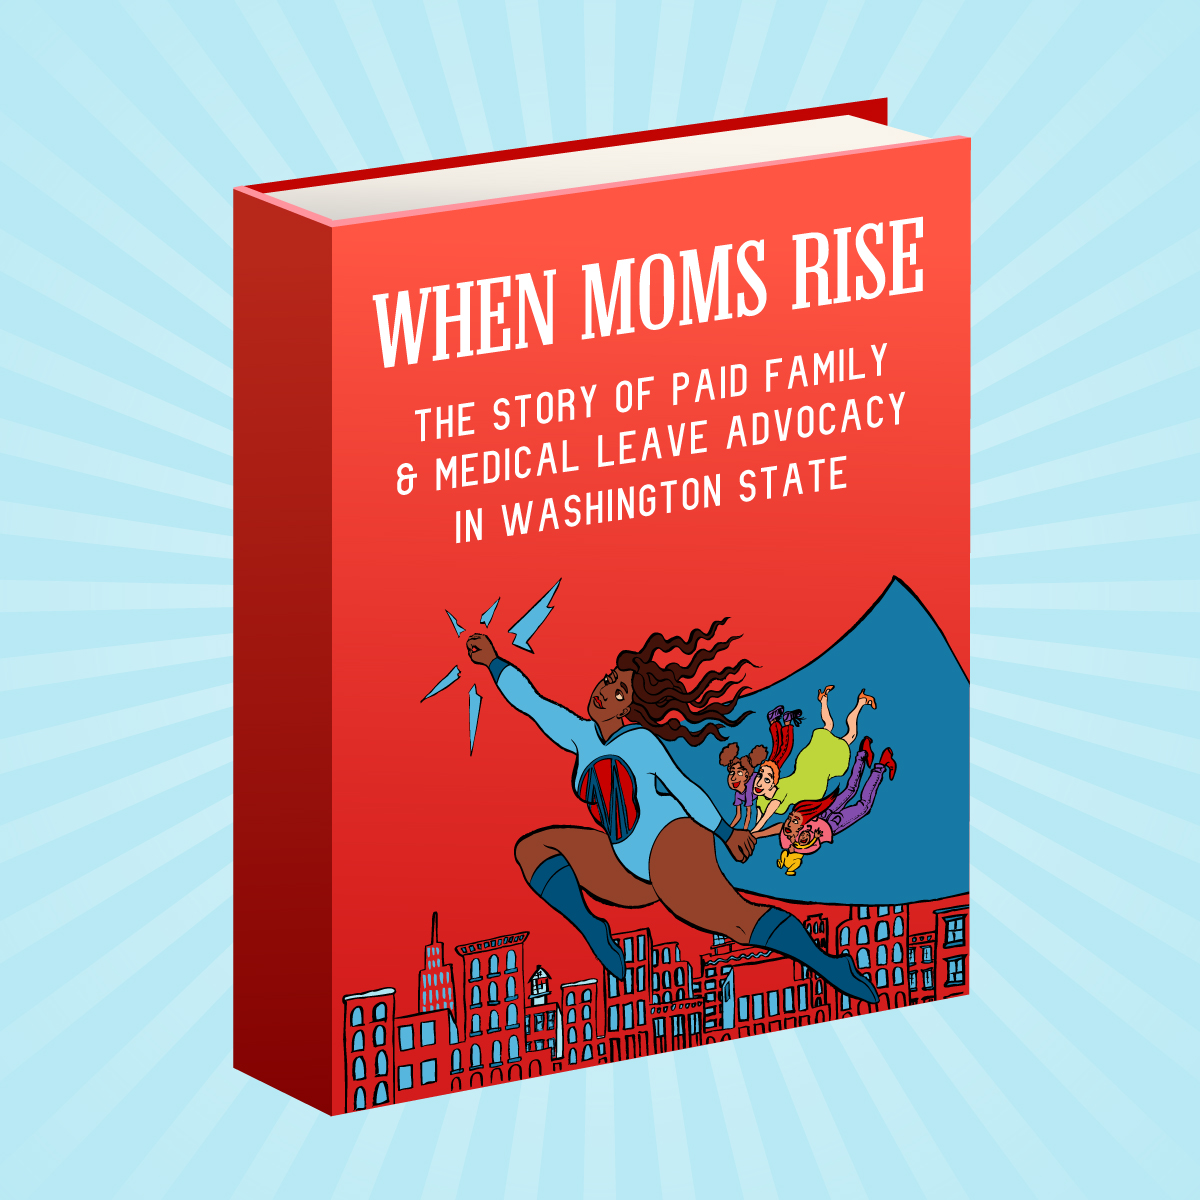 When Moms Rise: The Story of Paid Family & Medical Leave Advocacy in Washington State